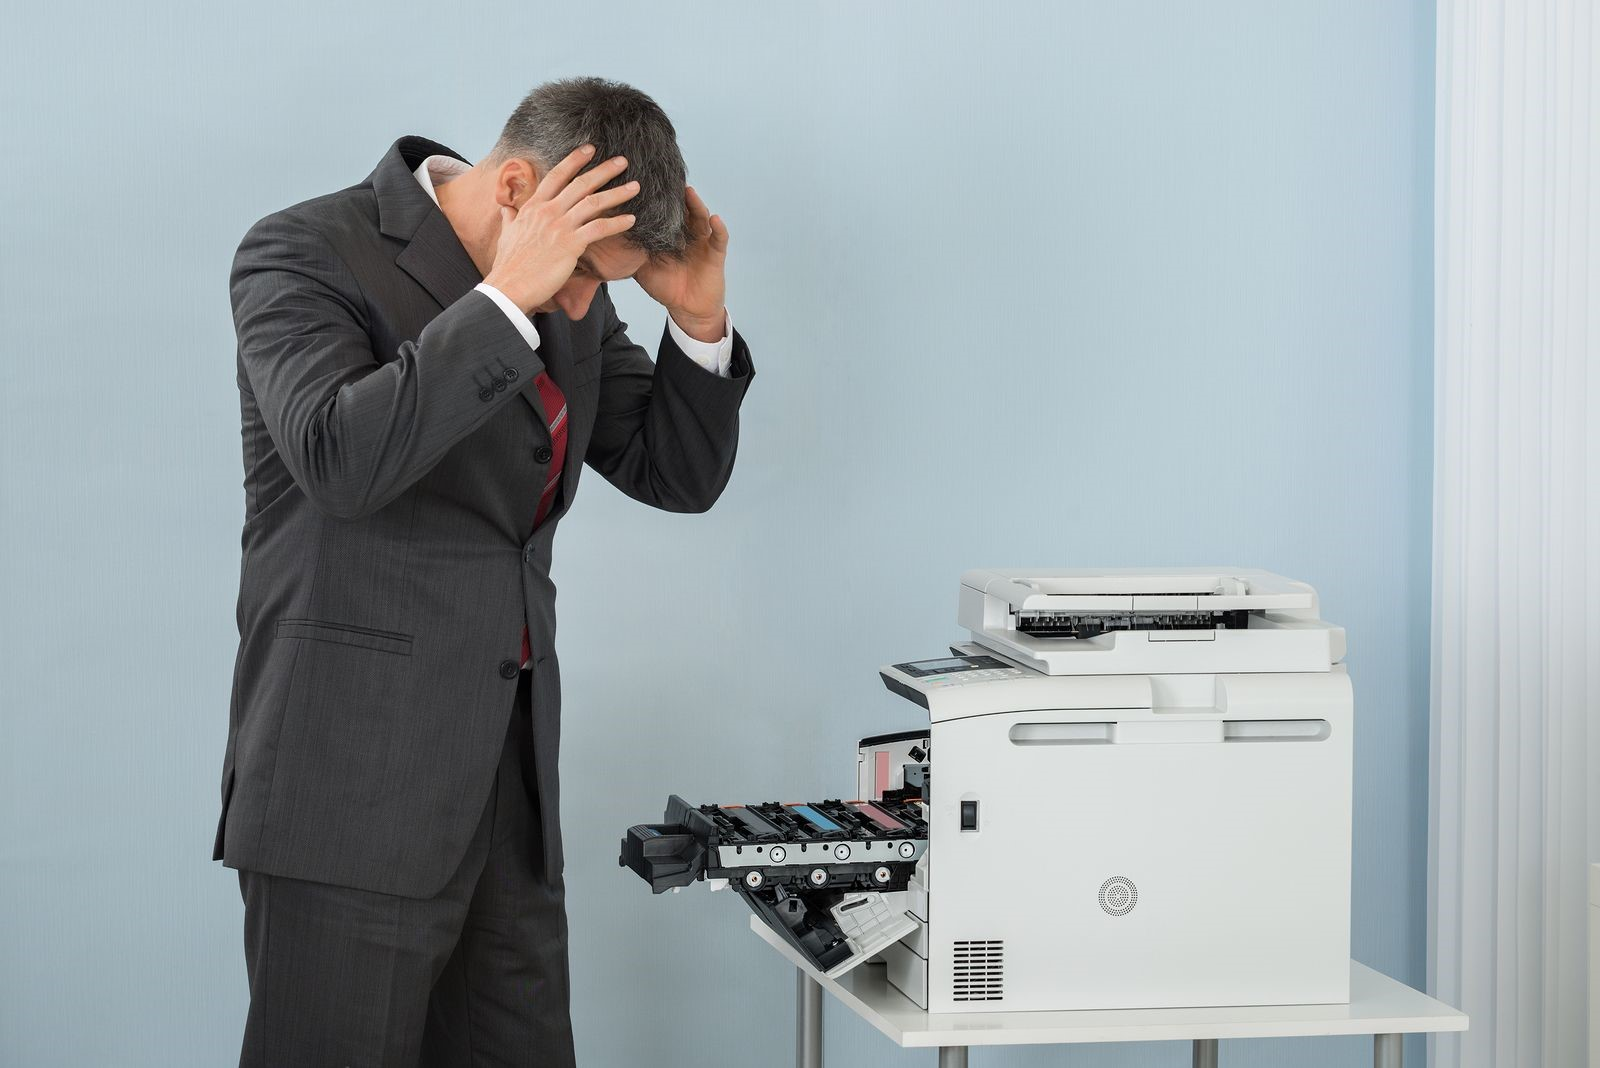 Copier Repair and the Regular Maintenance of Other Office Equipment